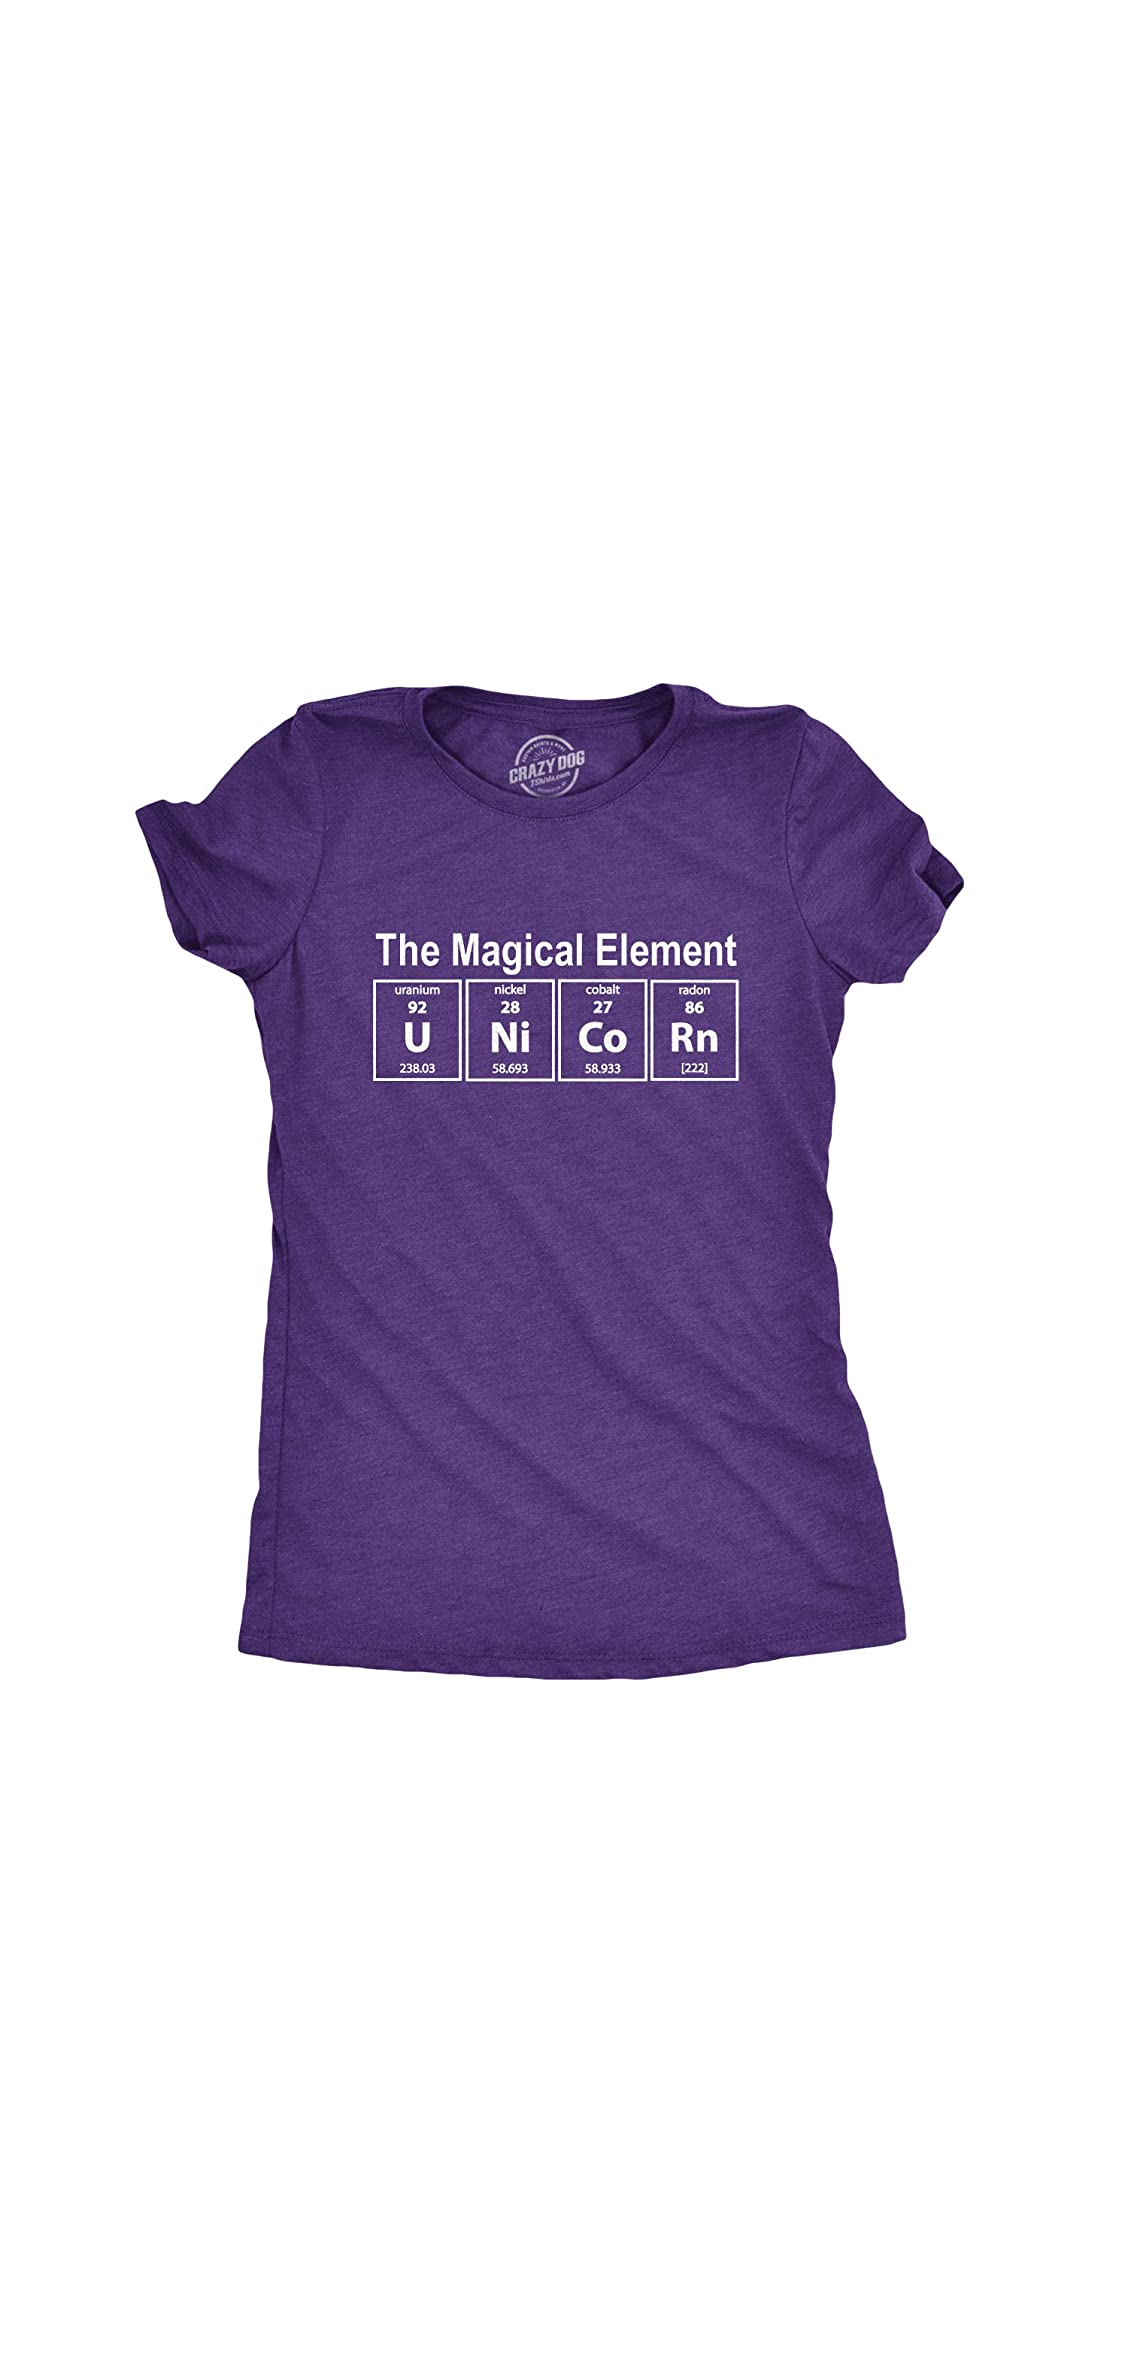 Womens Unicorn The Magical Element Tshirt Funny Science Tee